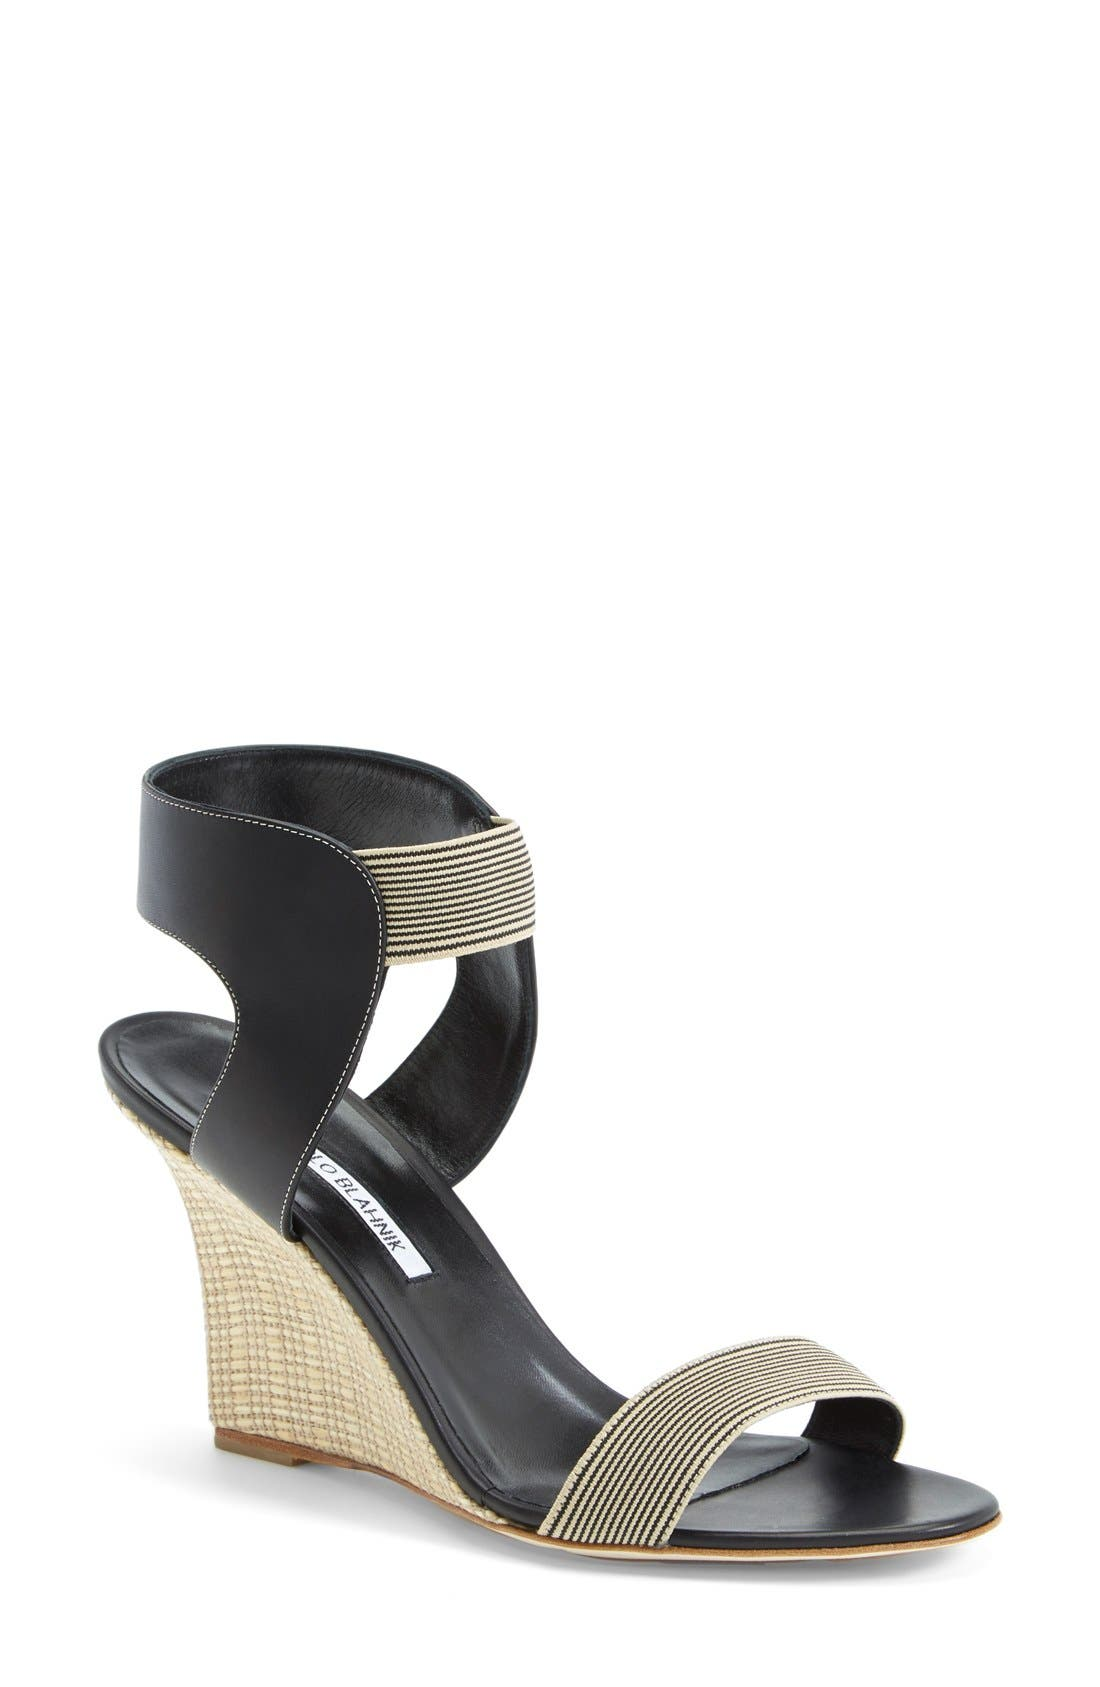 Main Image - Manolo Blahnik Ankle Strap Wedge Sandal (Women)